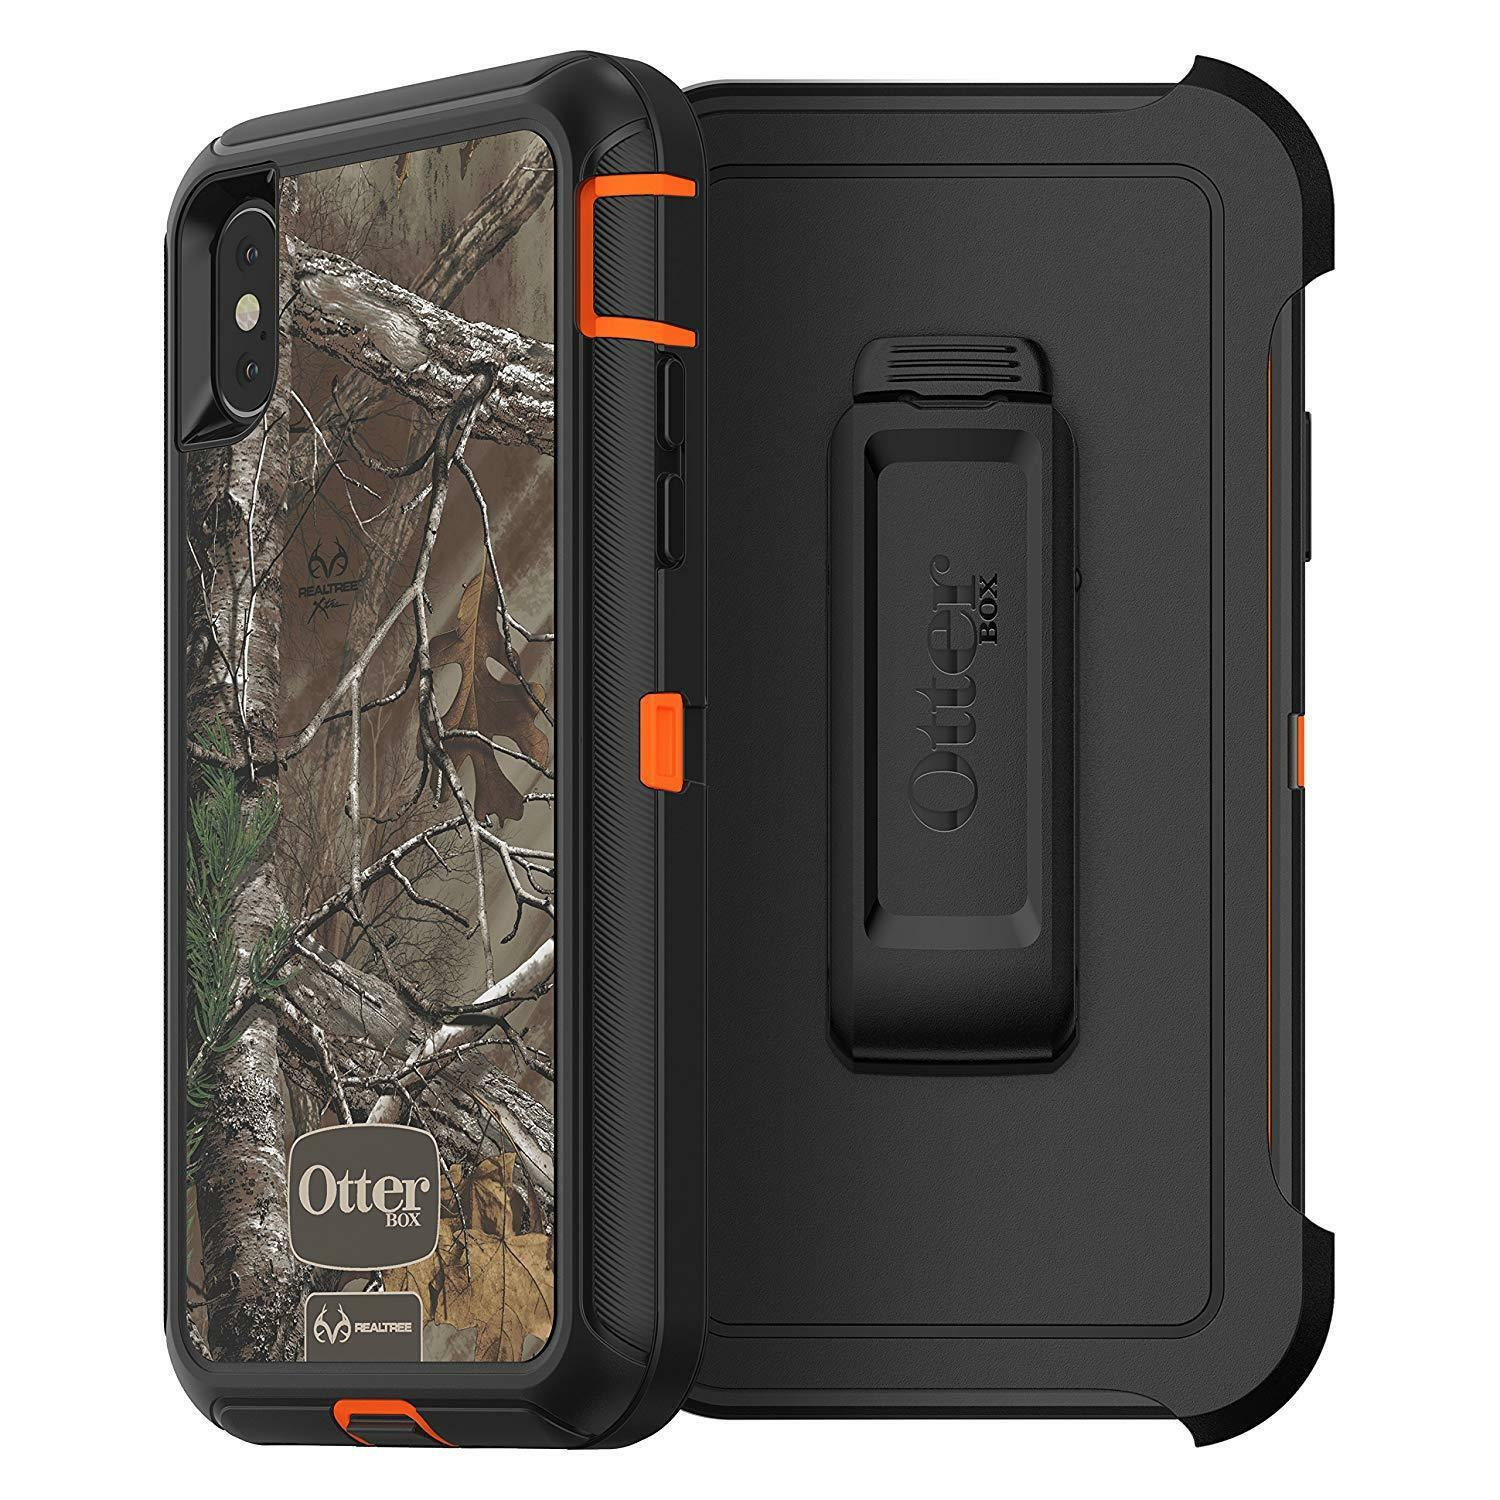 OtterBox DEFENDER SERIES Case for iPhone X (BLAZE ORANGE W/REALTREE XTRA CAMO)